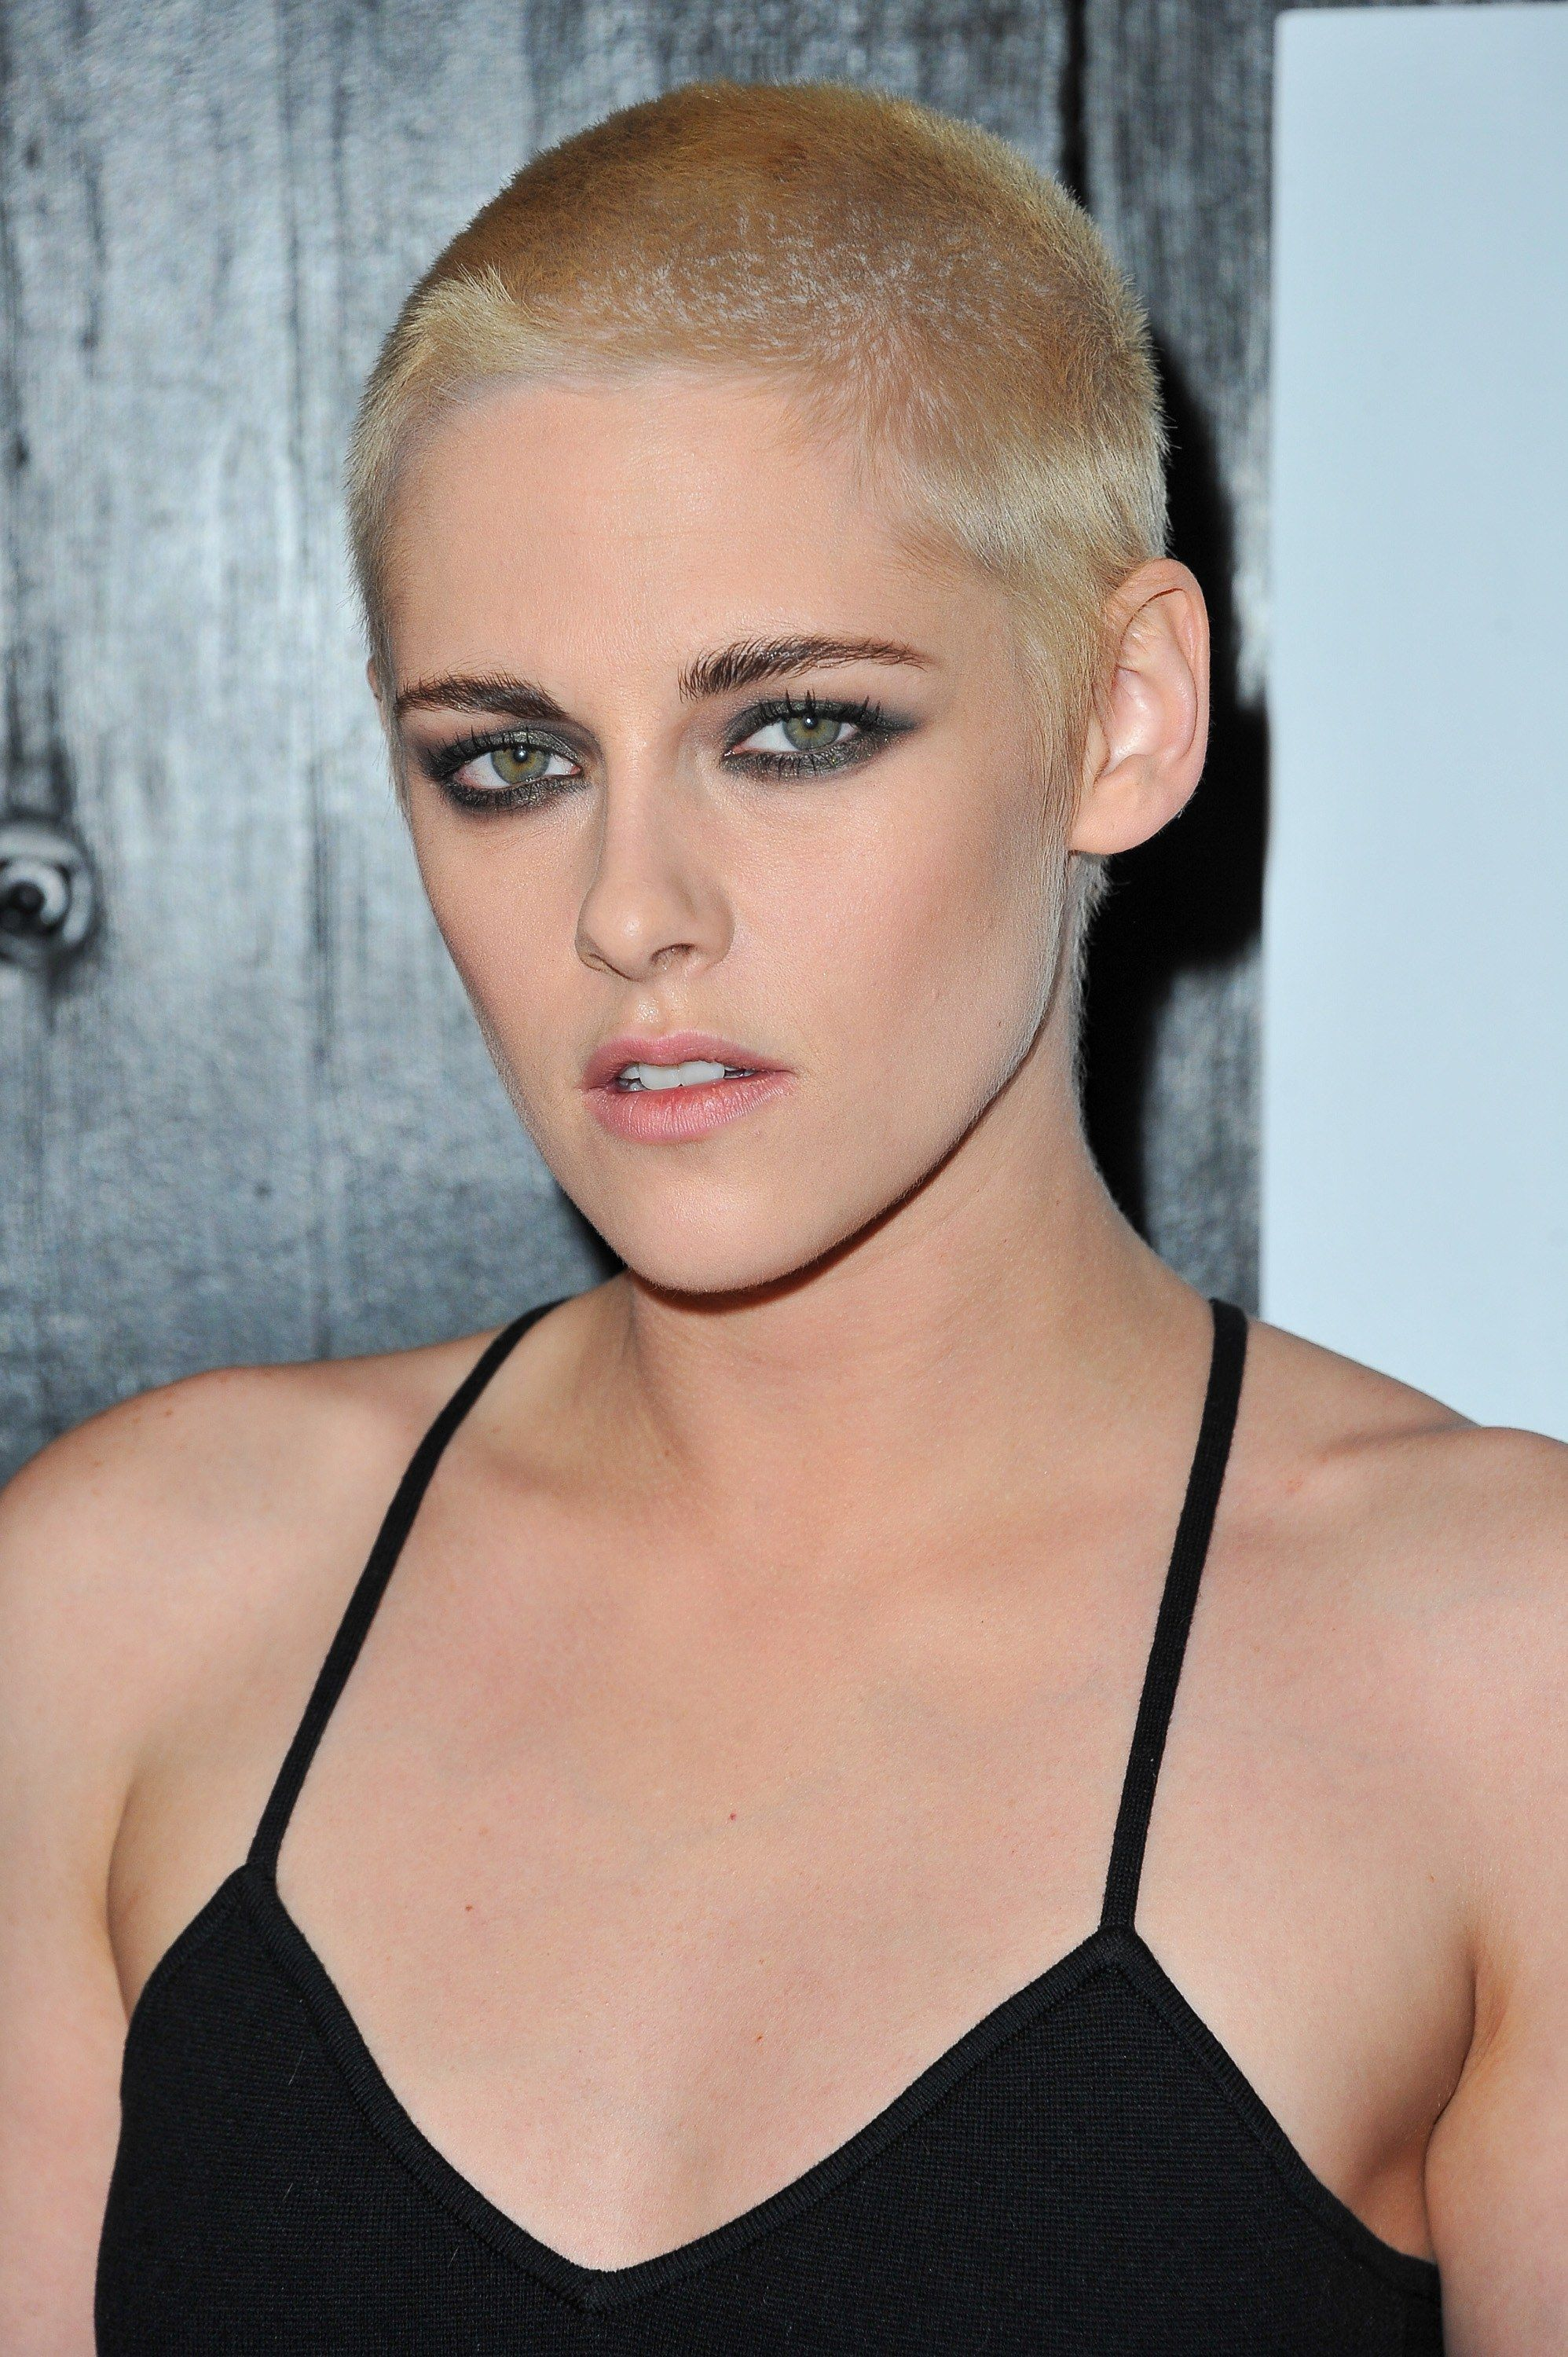 Attention Kristen Stewart Just Shaved Her Head And Dyed Her Hair Blonde Shave Her Head Celebrity Short Hair Kristen Stewart Hair